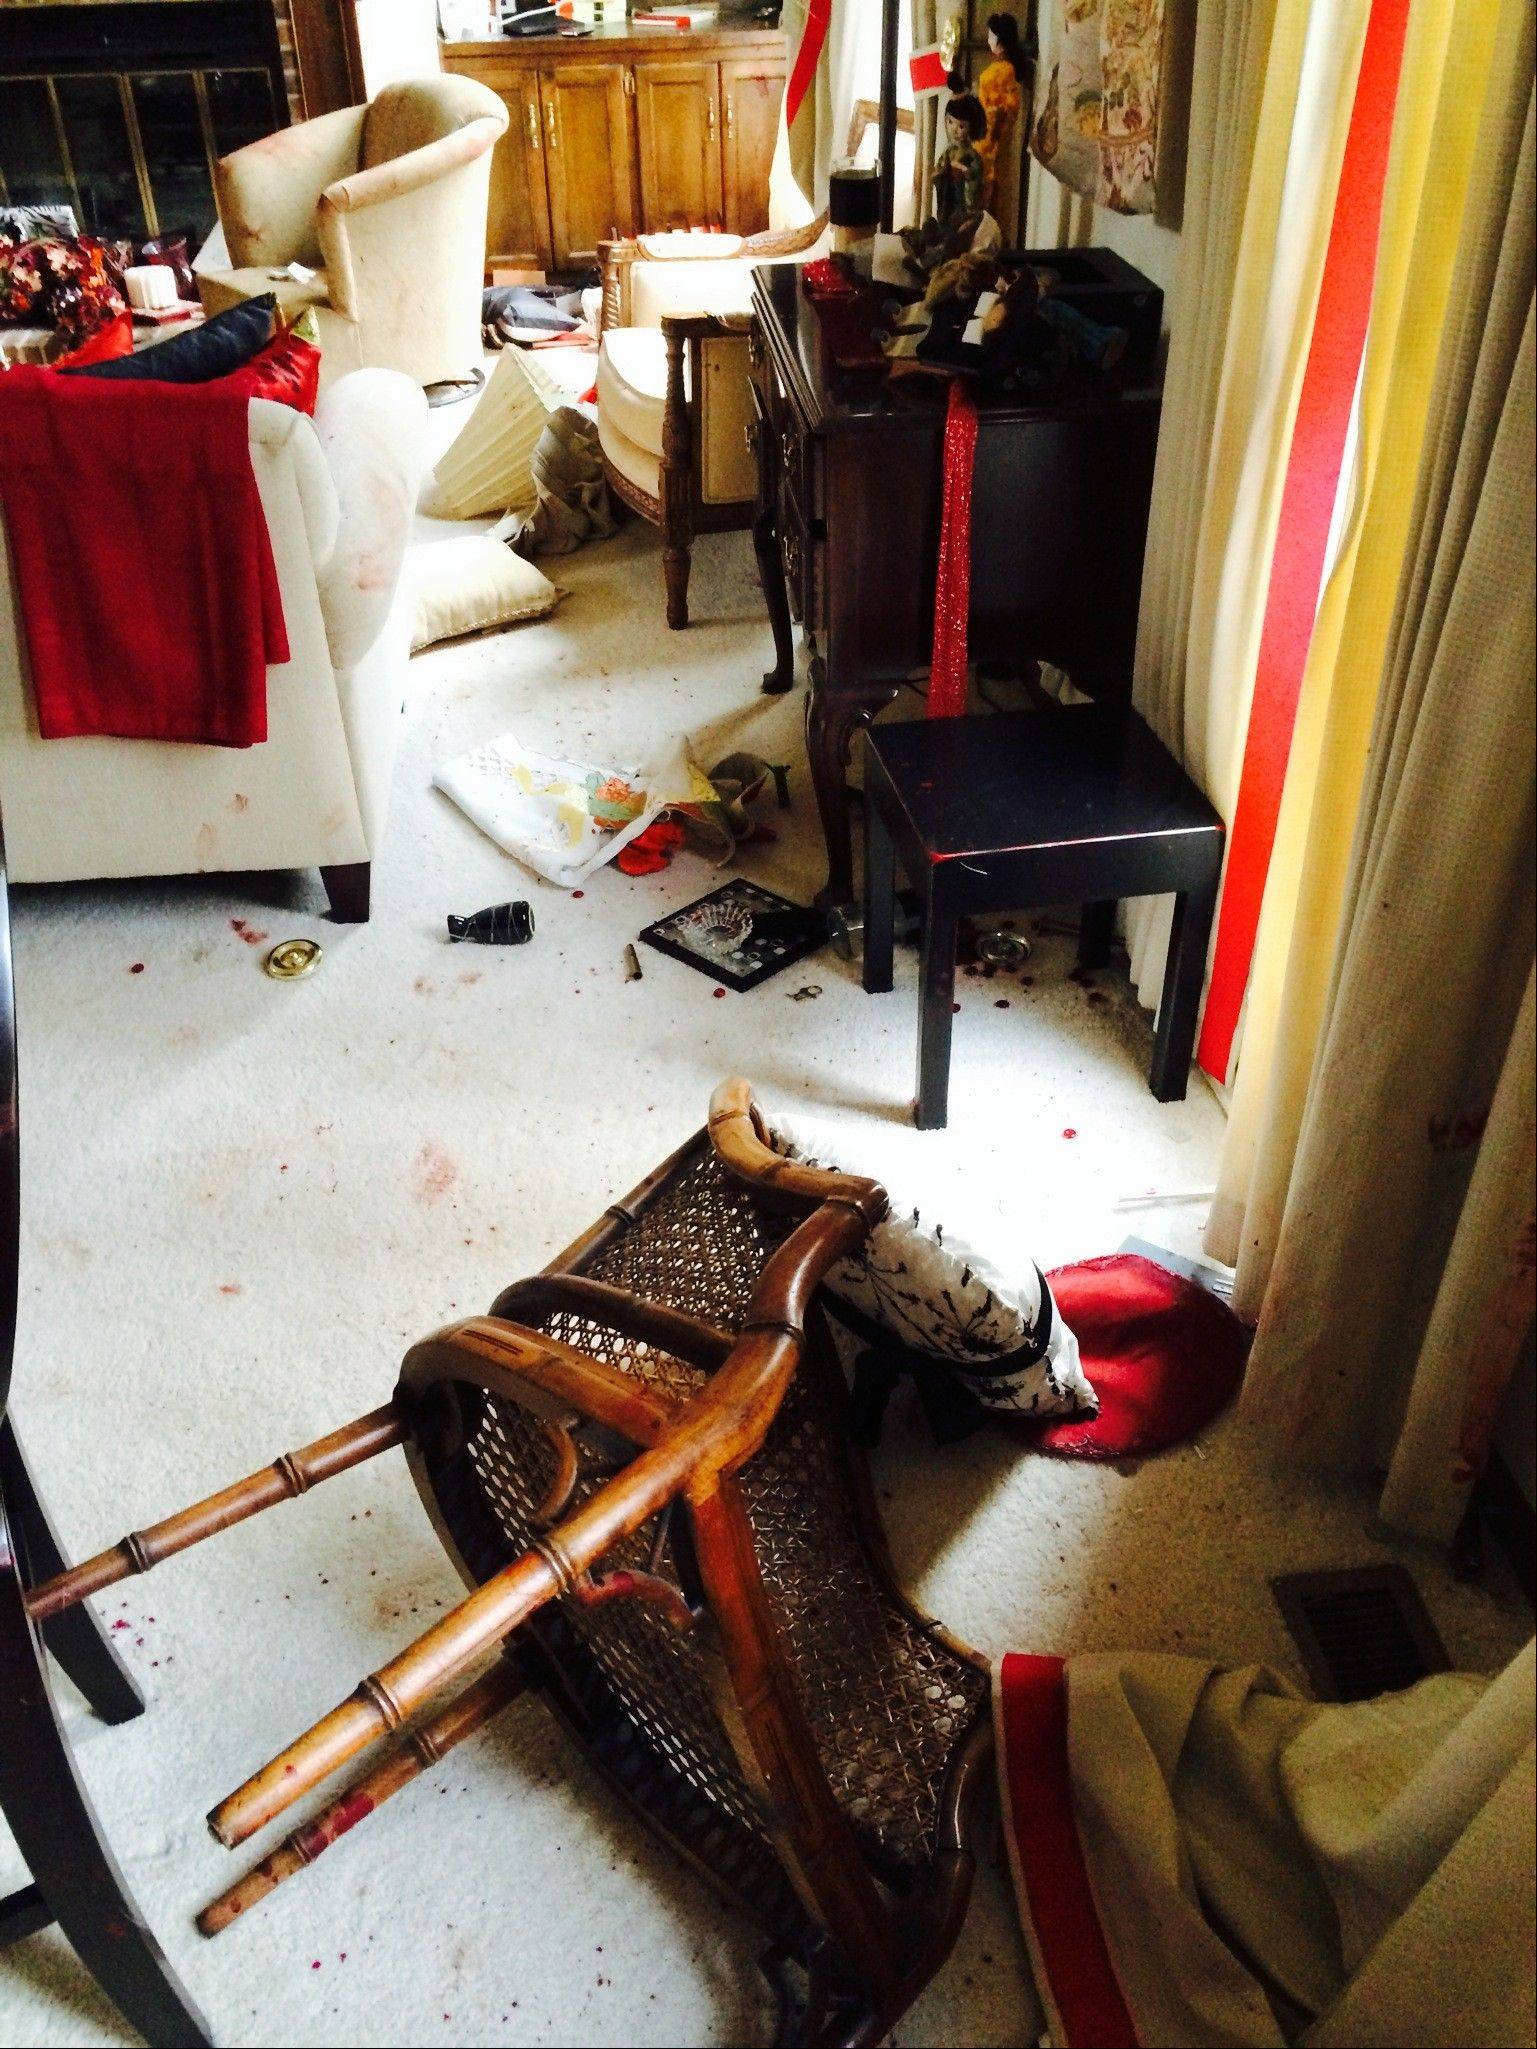 Deer crashes through Sugar Grove home, owner retaliates with golf club